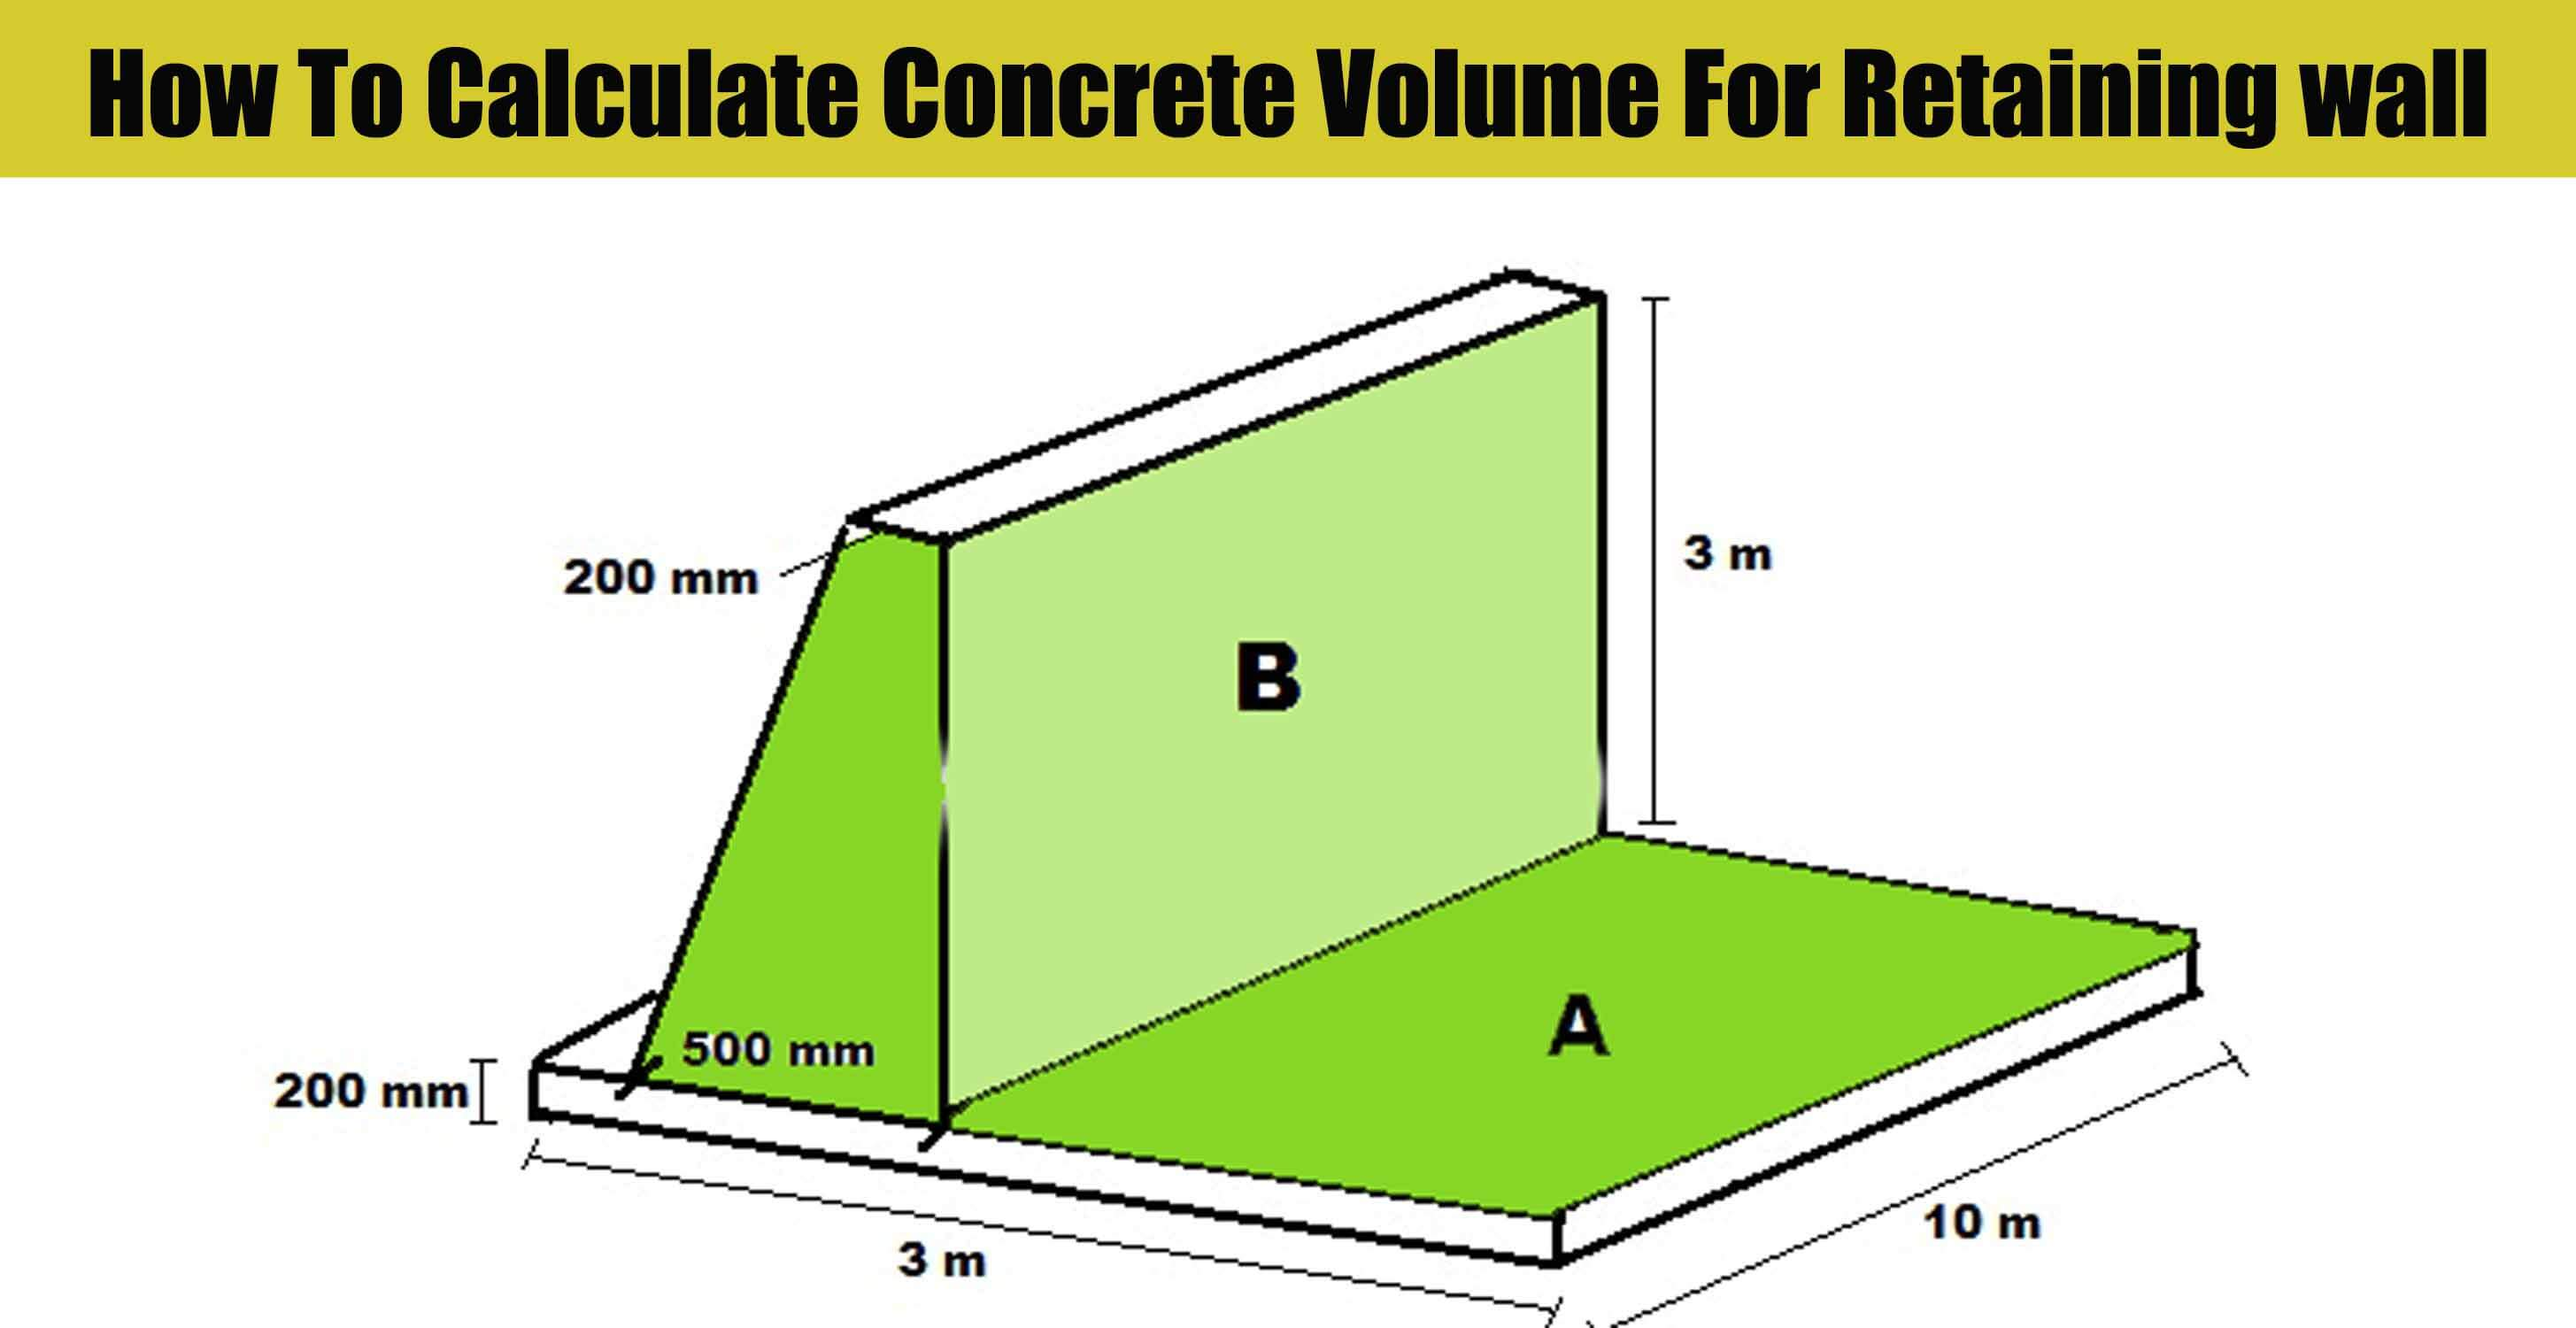 How To Calculate Concrete Volume For Retaining wall